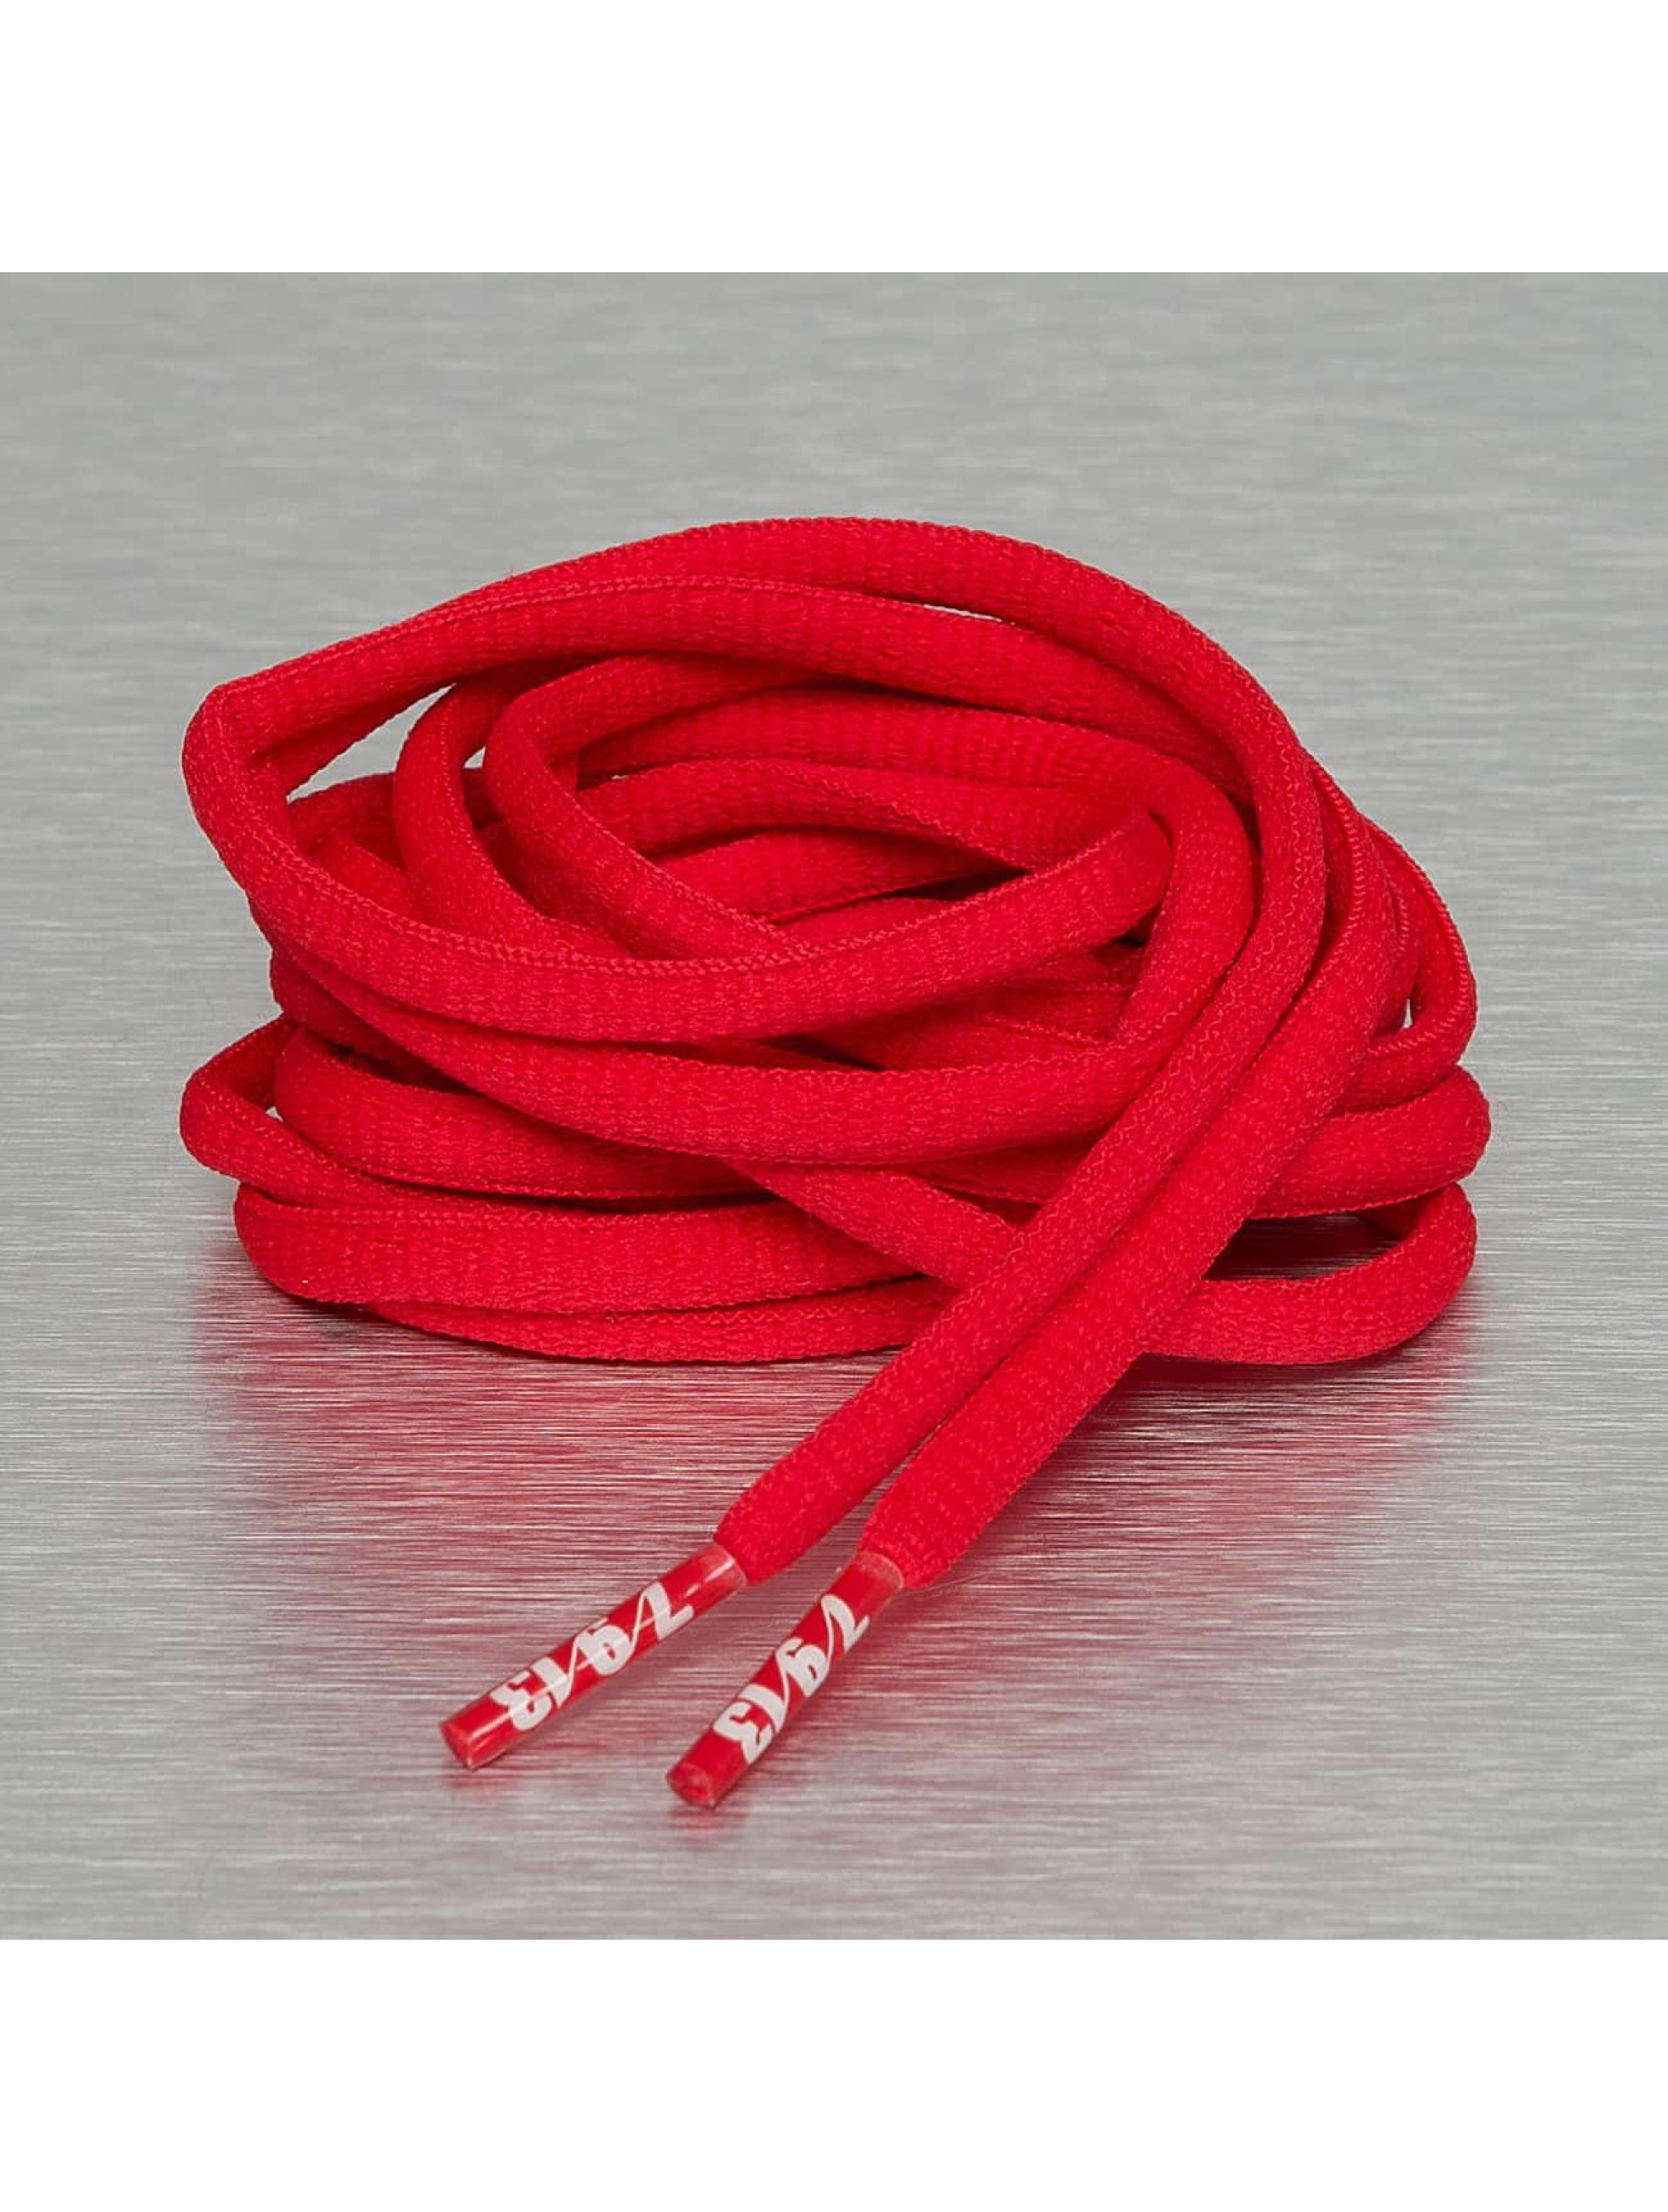 Seven Nine 13 Shoelace Hard Candy Round red